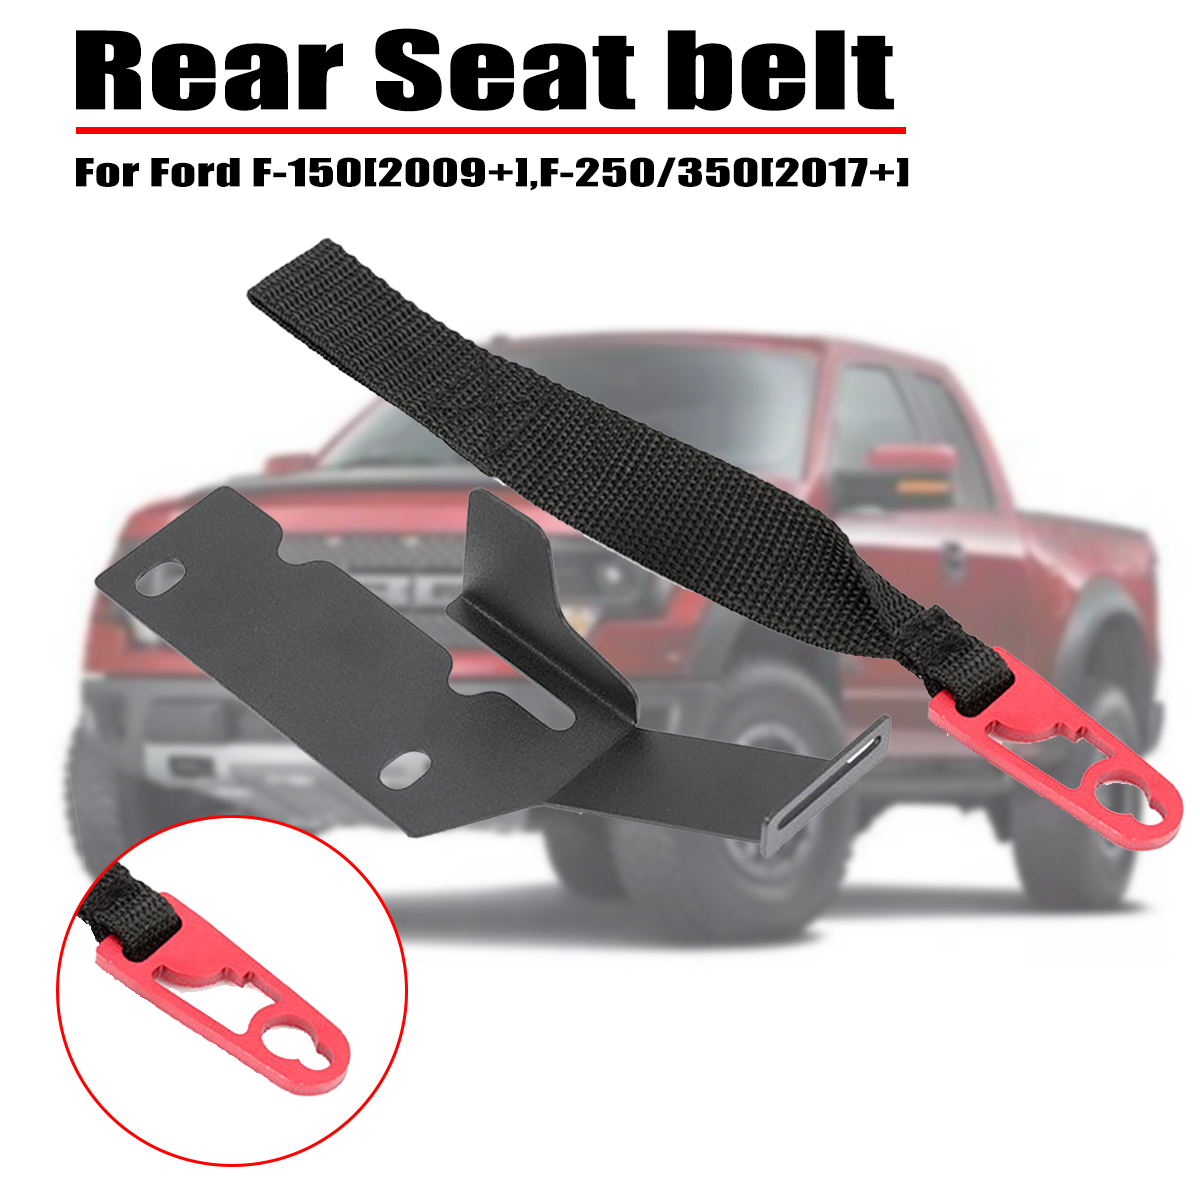 F-250 F-350 2017+ Rear Seat Release Kit Strap Fit for Ford SuperCrew F-150 2009